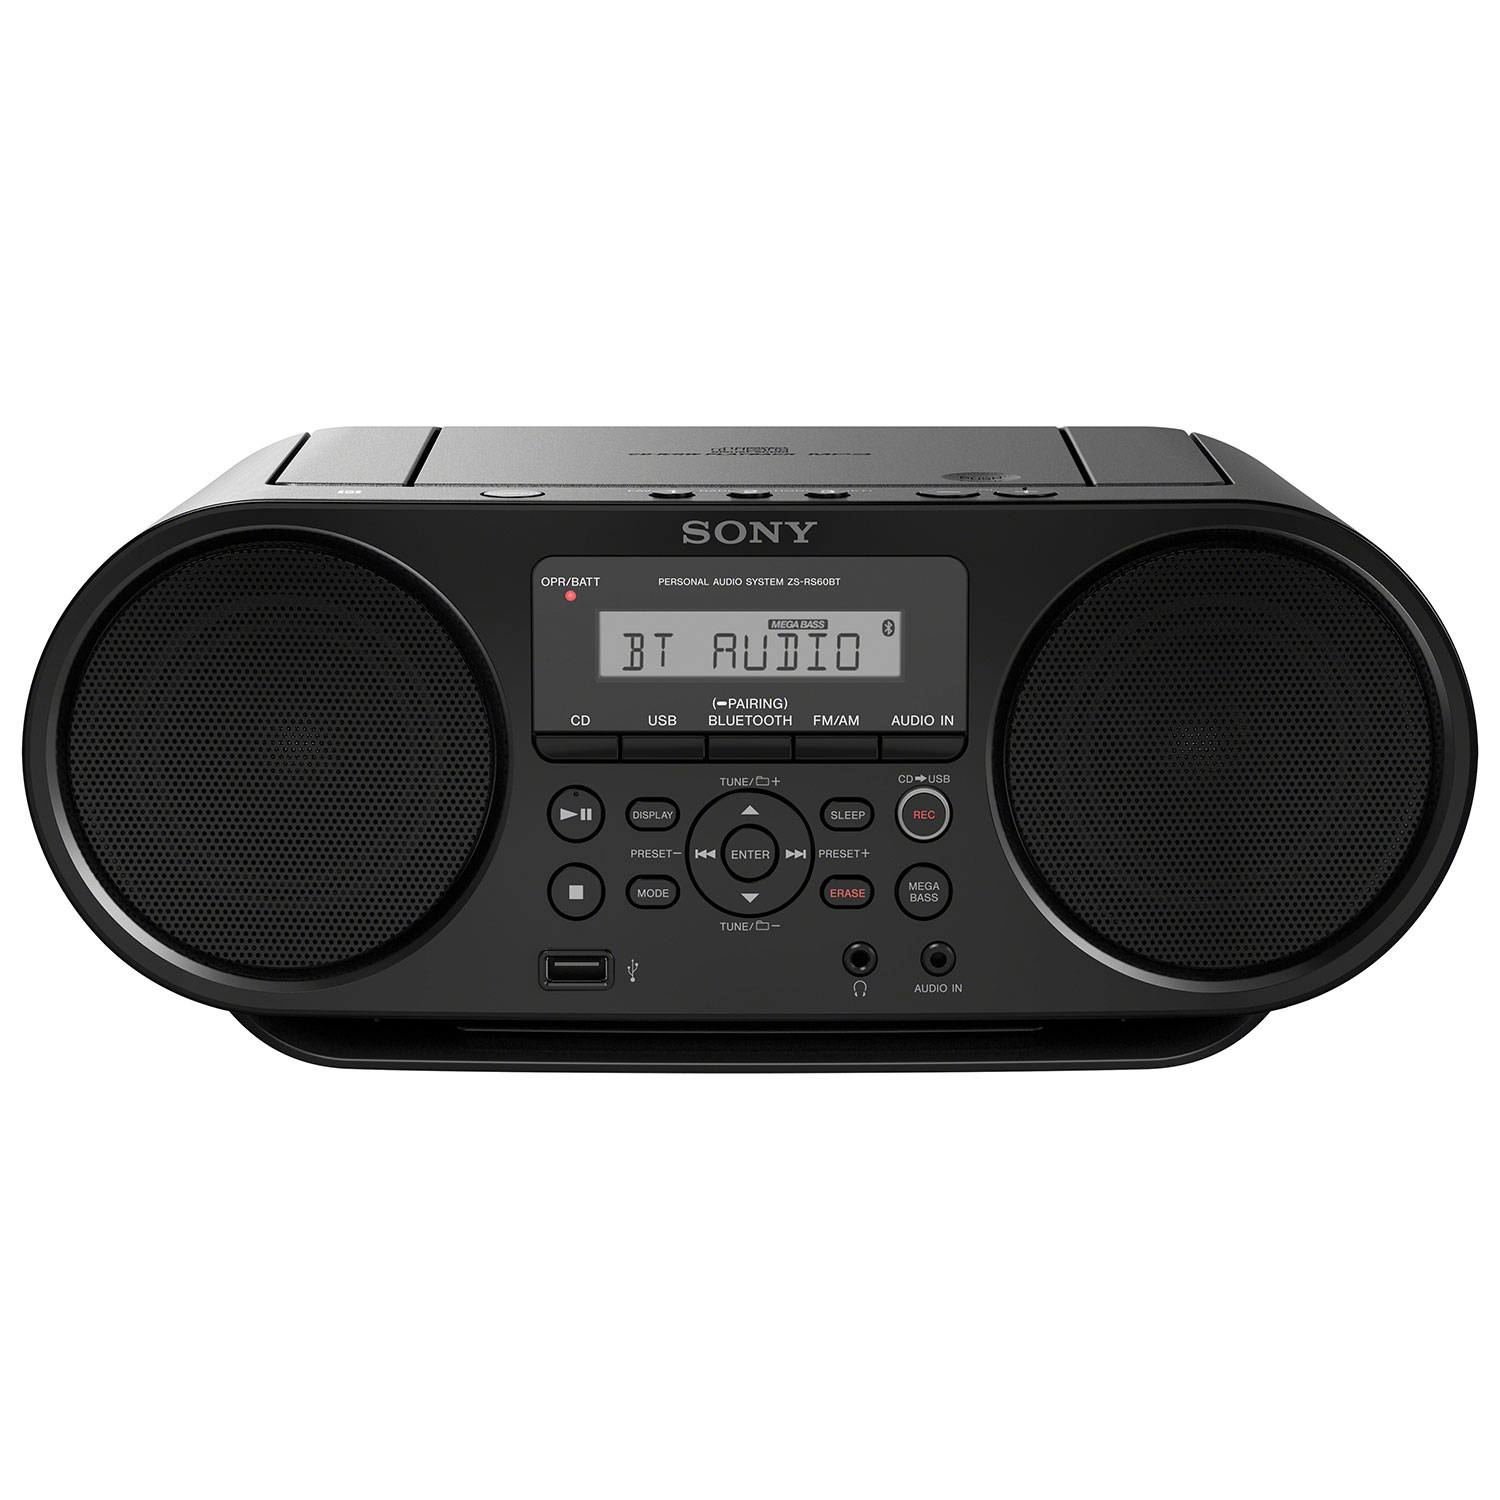 Small Cd Player For Bedroom Sony Zs Rs60bt Bluetooth Portable Boombox Black Boomboxes